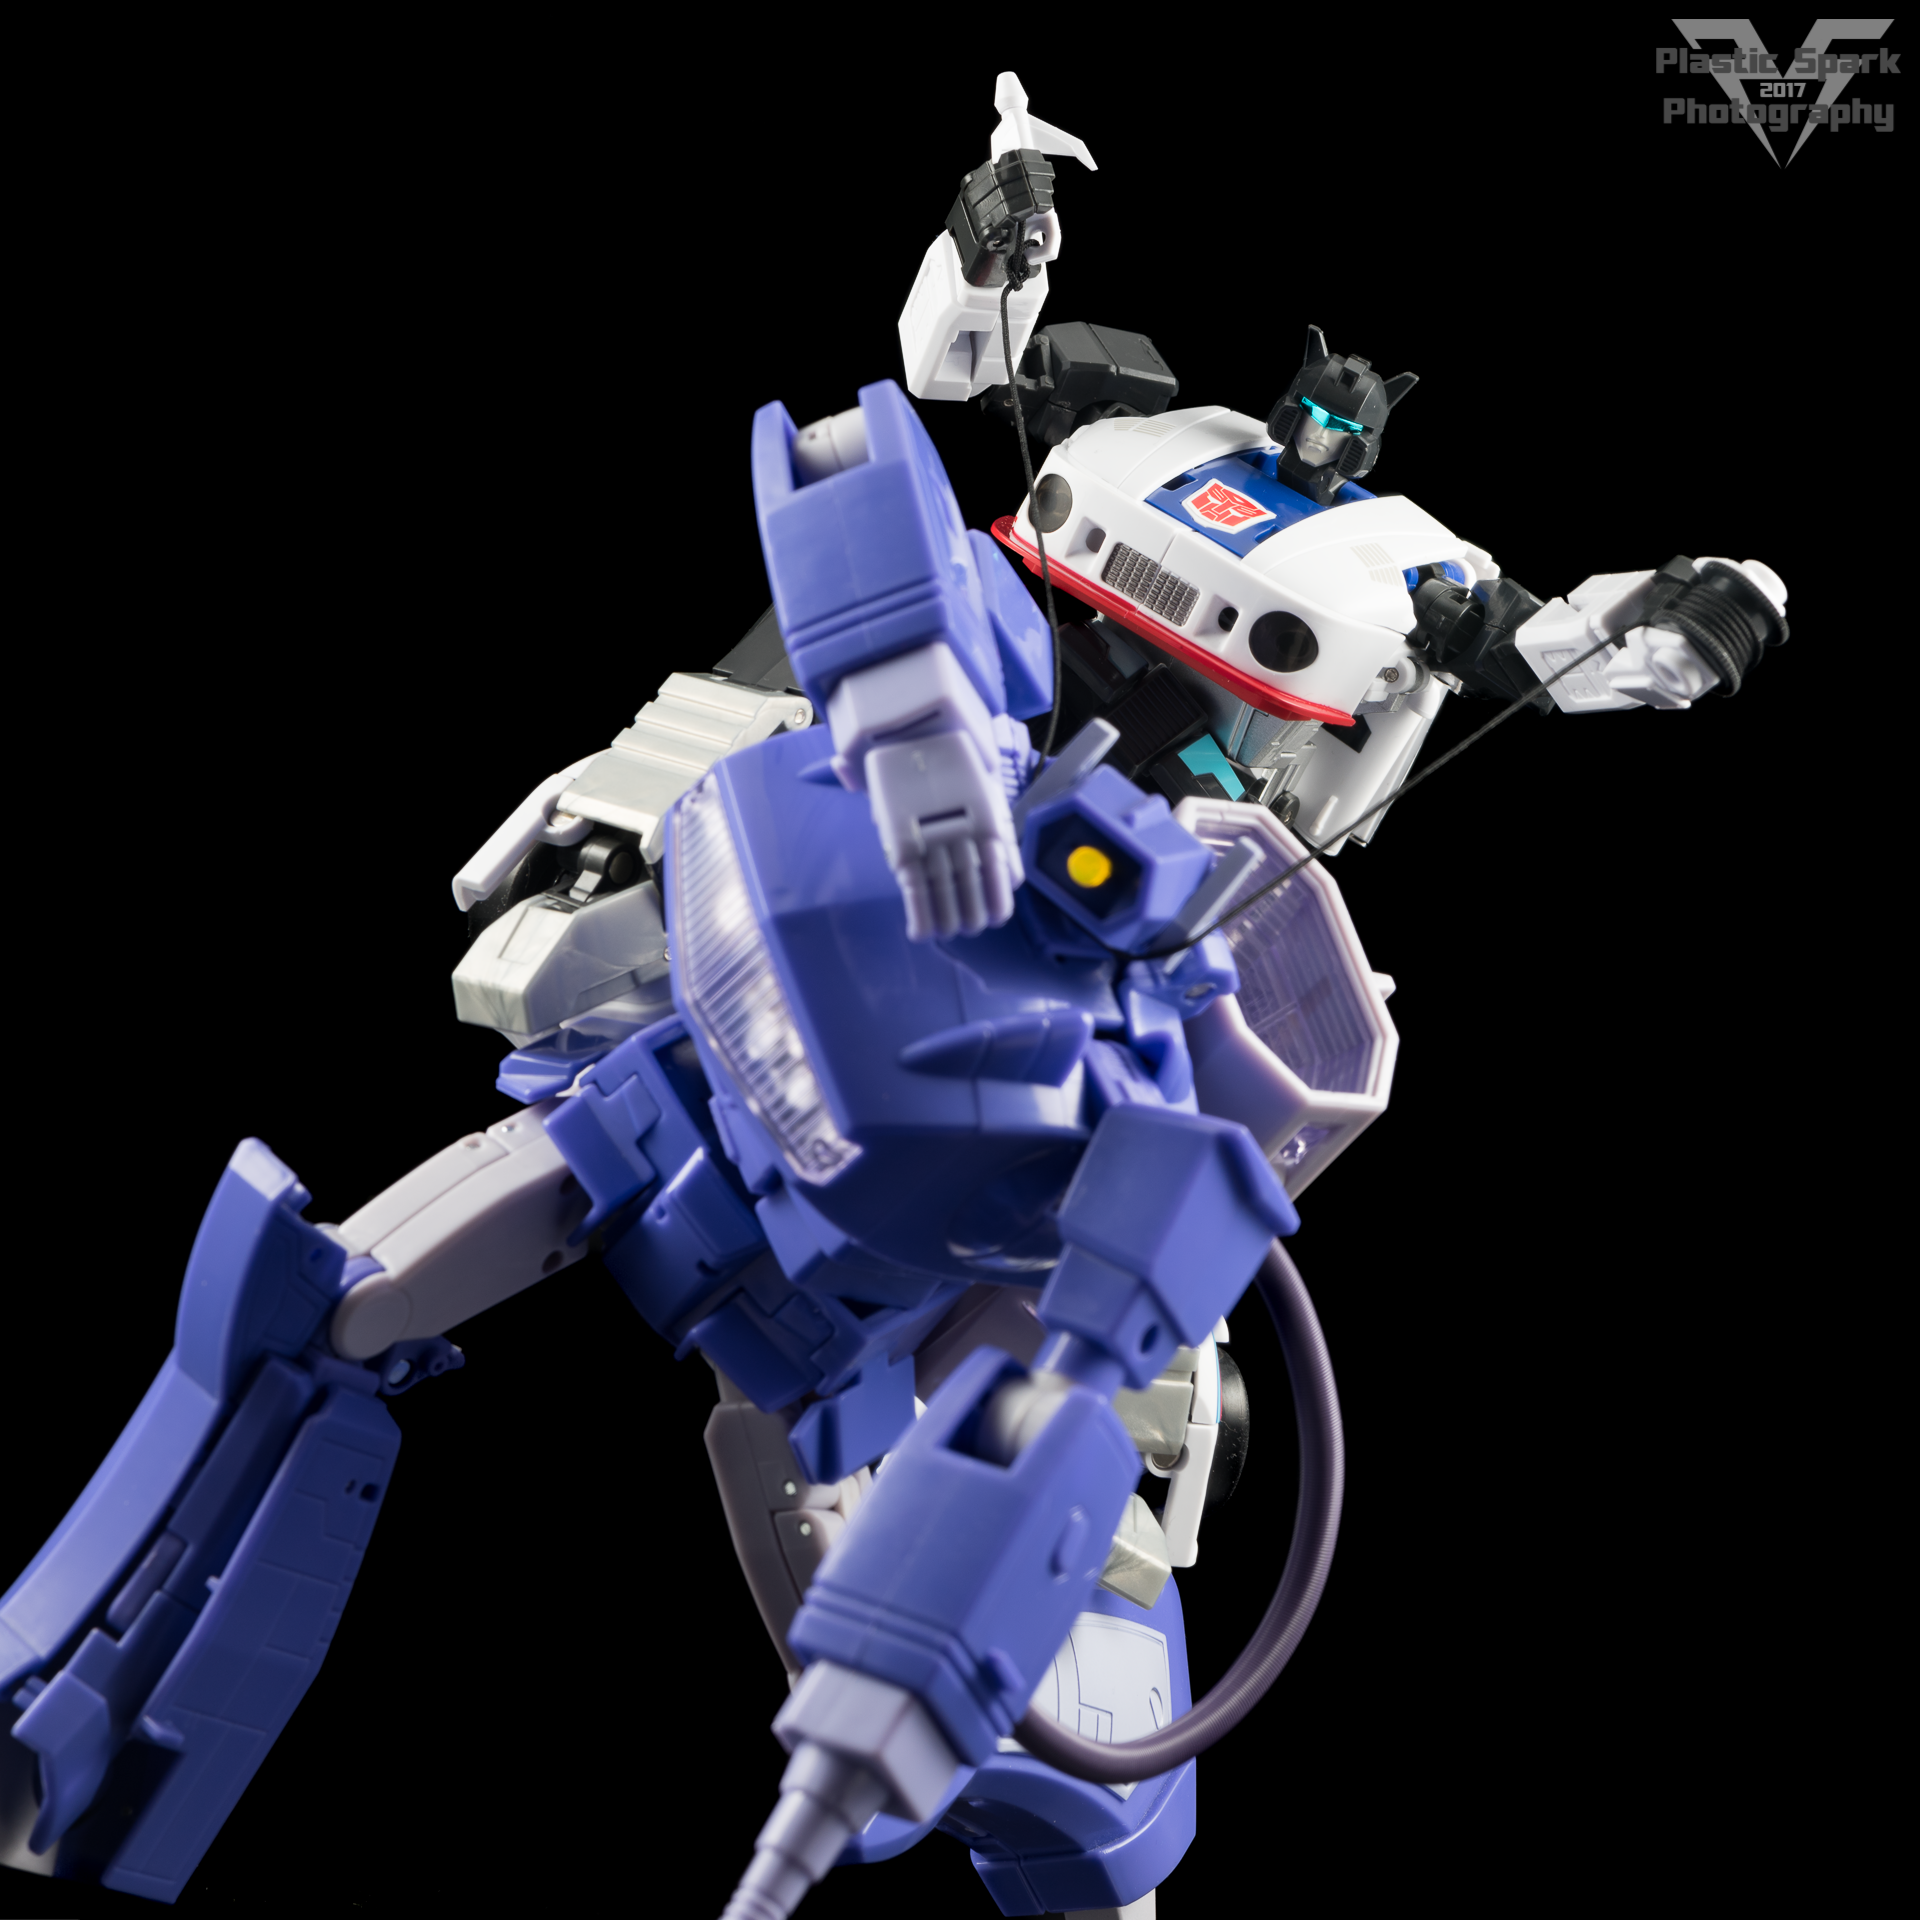 MakeToys-Re-Master-MTRM-09-Downbeat--(39-of-42).png